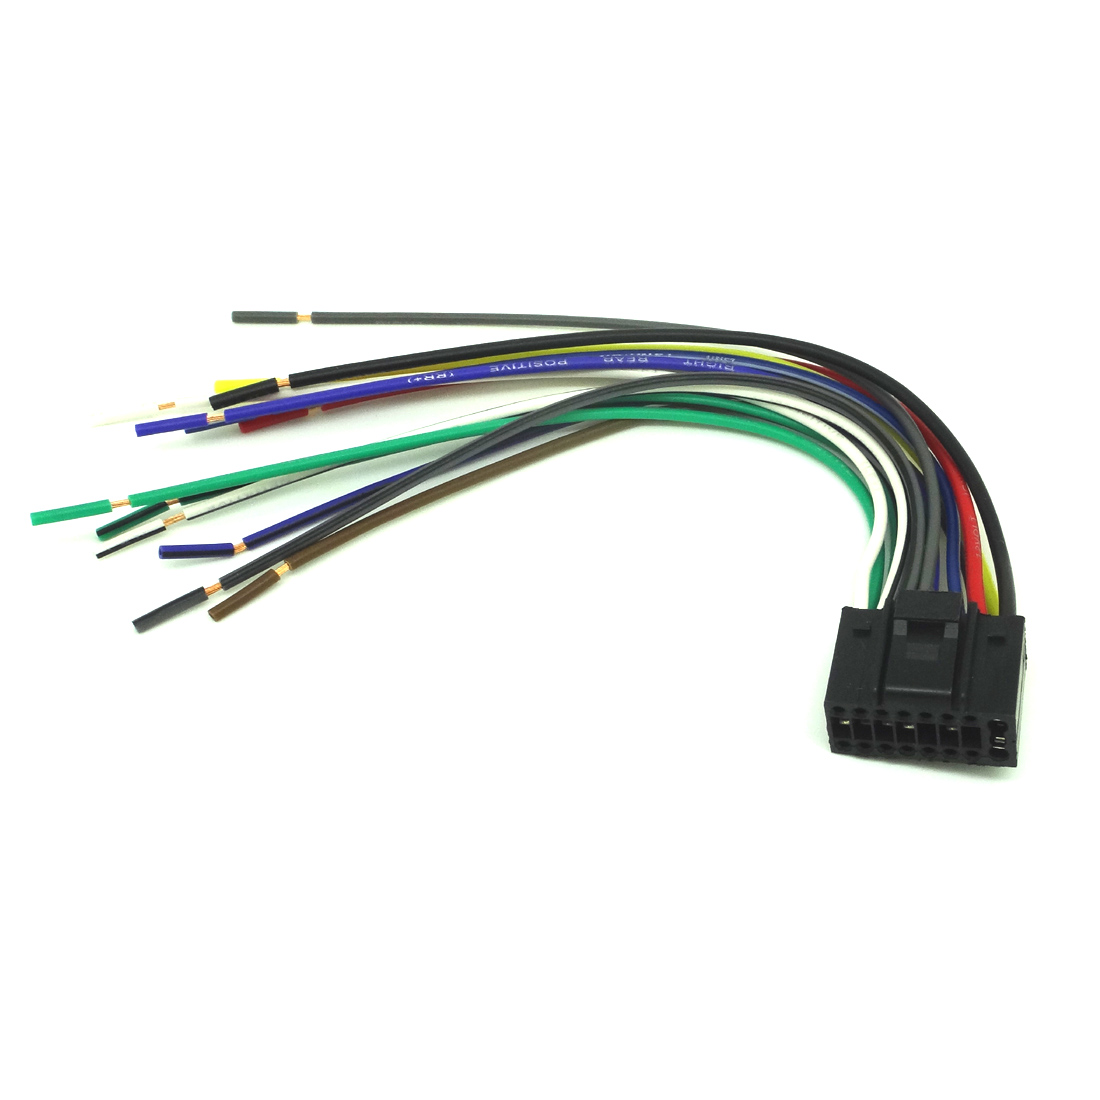 player 16 pin RADIO CAR AUDIO STEREO WIRE HARNESS for KENWOOD KDC MP4028 KDC MP4032 KDC kenwood kdc mp4032 wiring harness kenwood speaker wiring harness kenwood kdc-mp4032 wiring diagram at nearapp.co